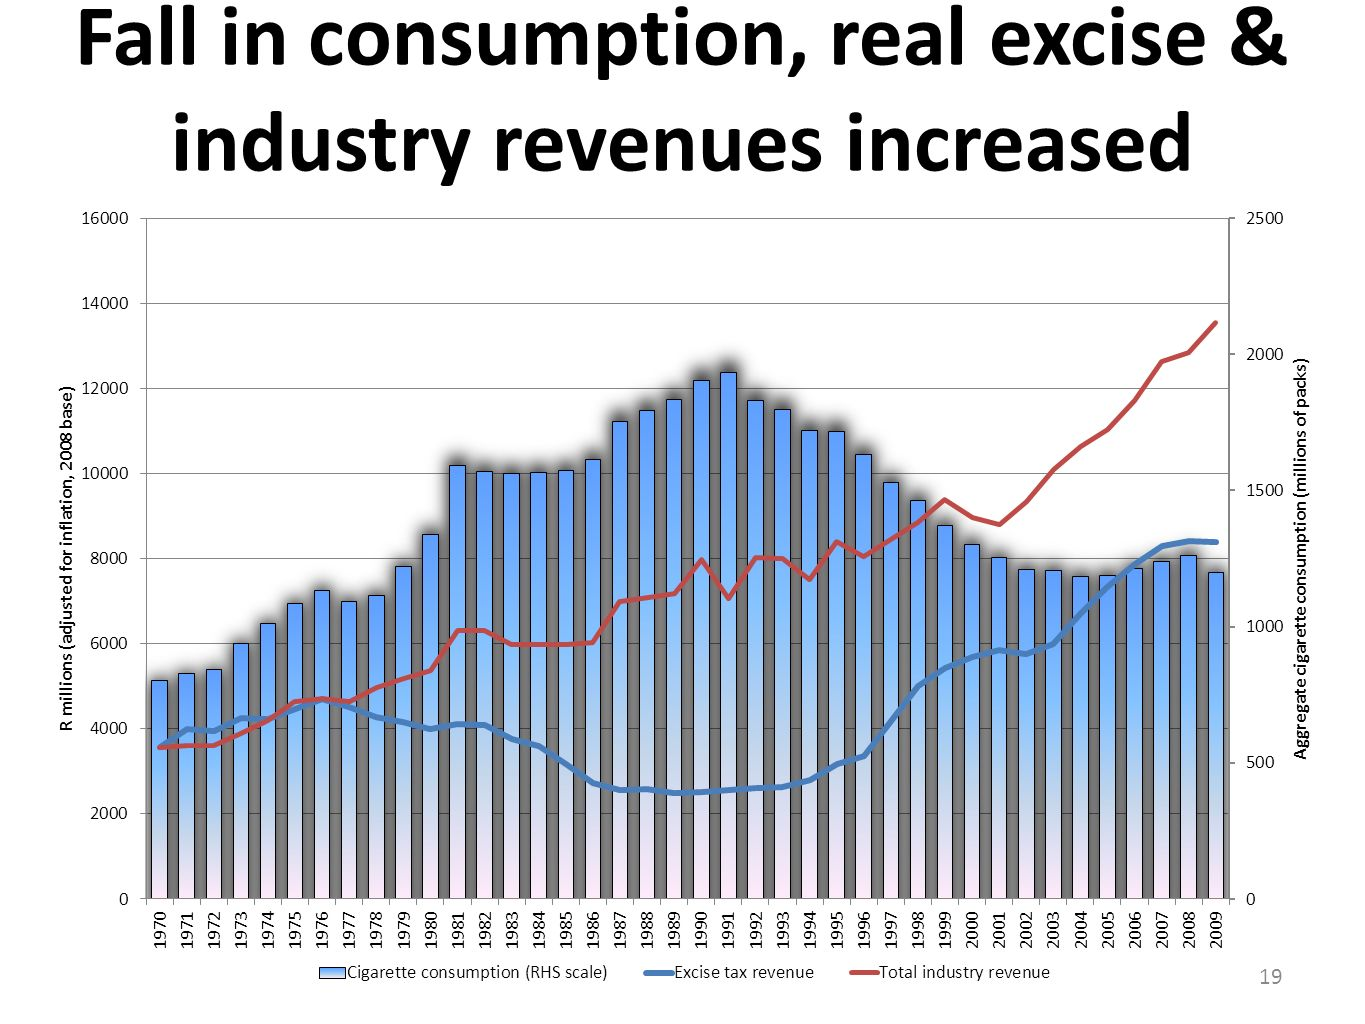 Fall in consumption, real excise & industry revenues increased